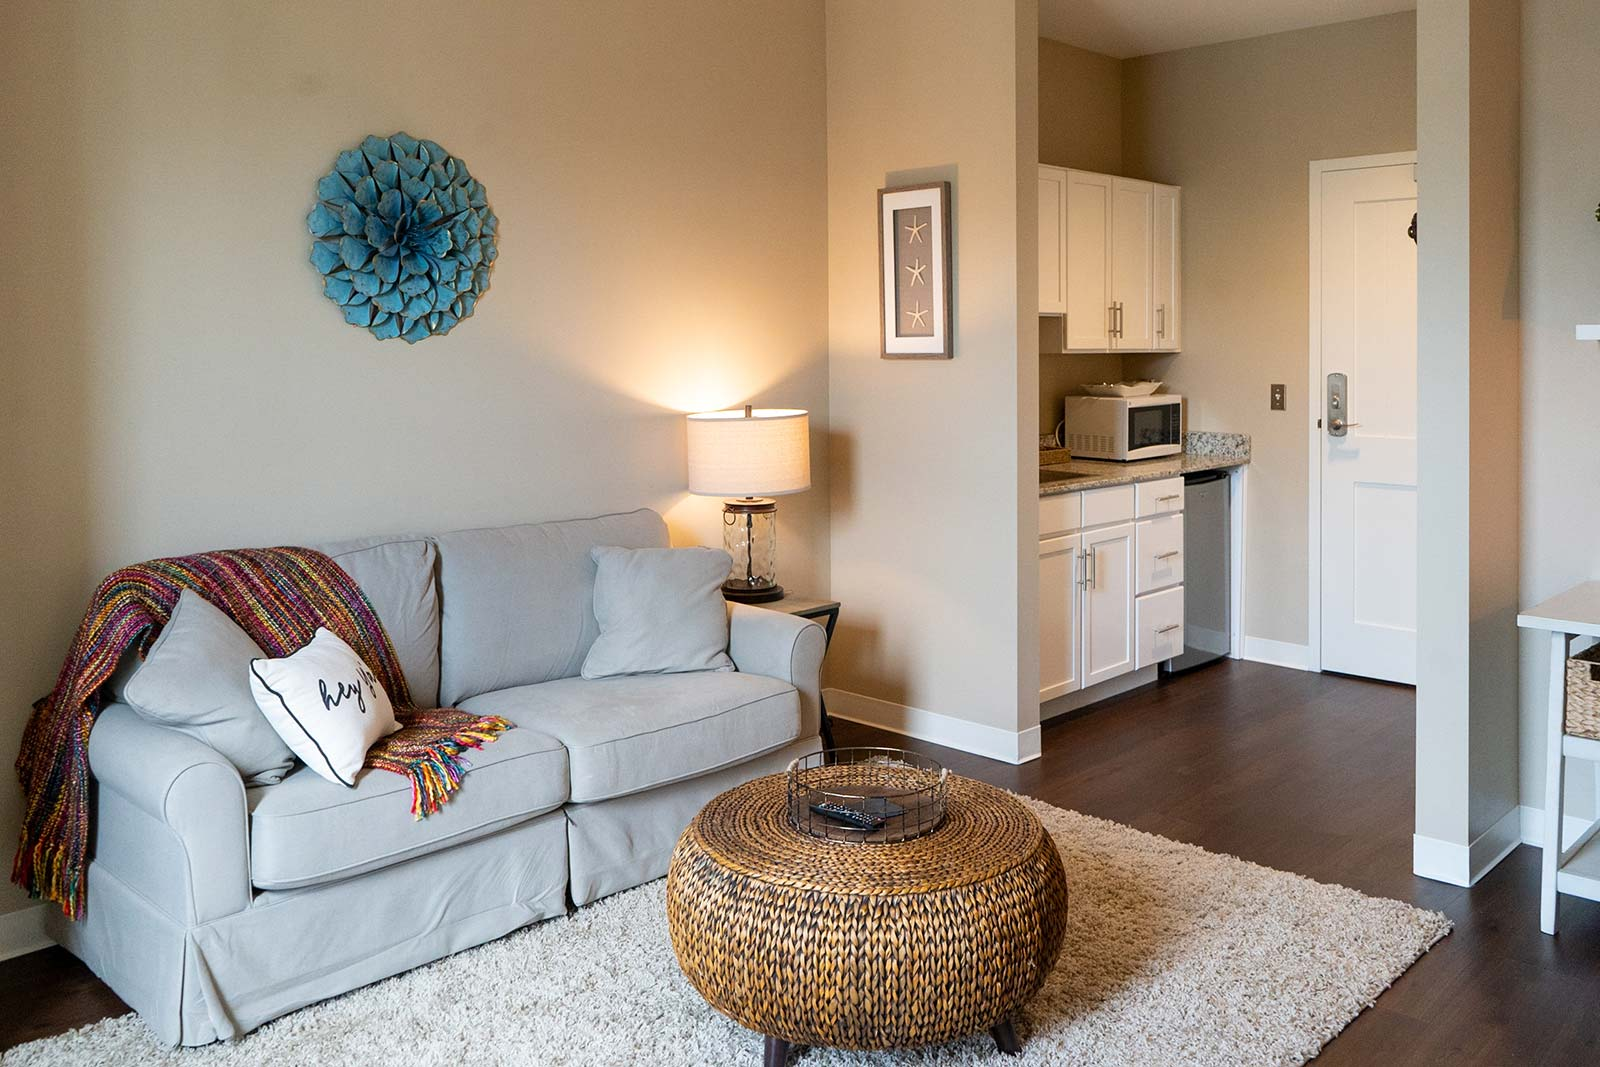 Assisted living apartment living room at The Arbors of Gulf Breeze in Gulf Breeze, FL